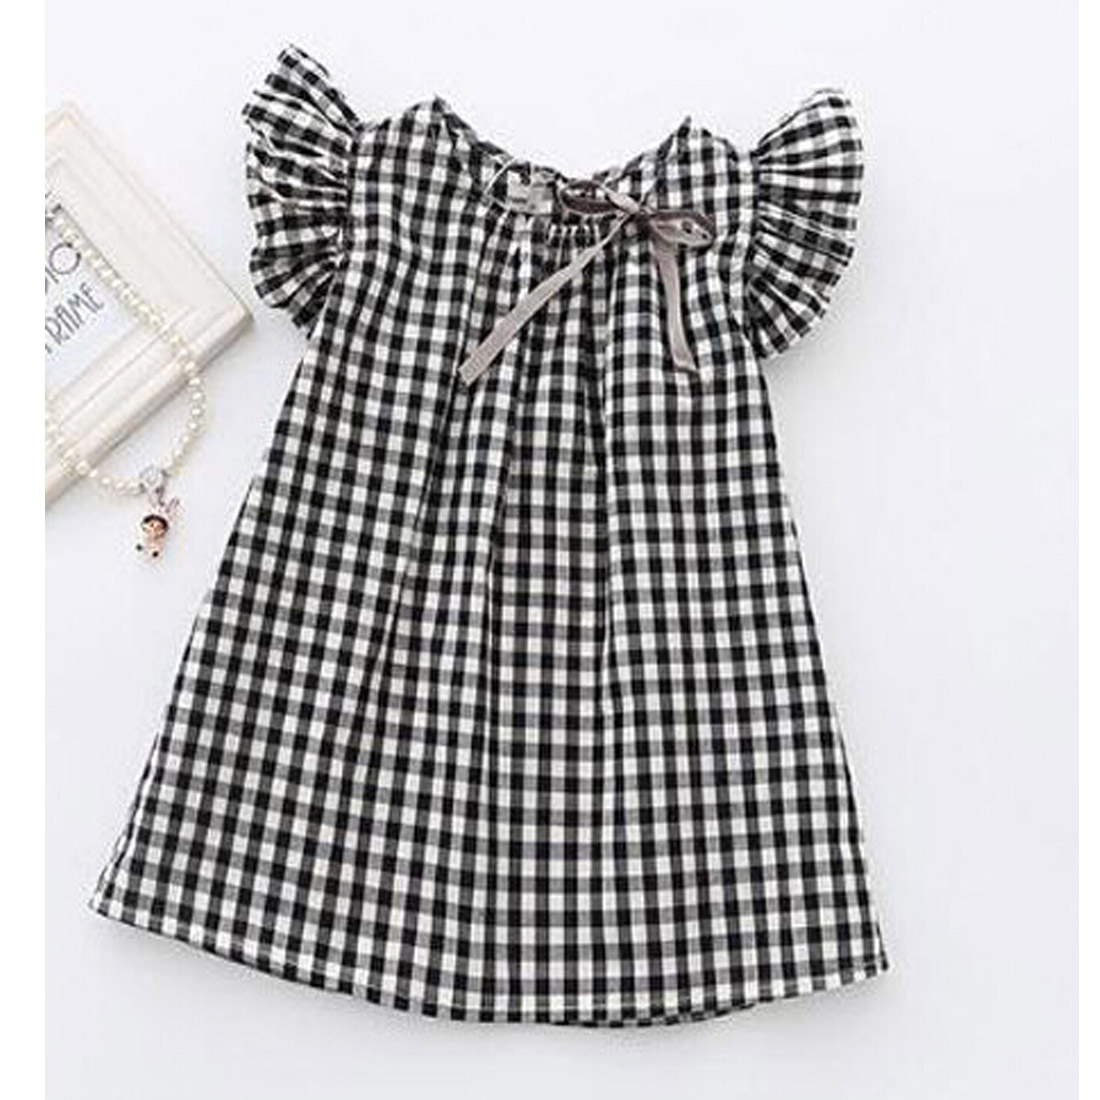 Pudcoco Girl Dress 2Y-7Y Cute Toddler Baby Girls Summer Princess Dress Retro Ruffle Plaid Clothes Dresses